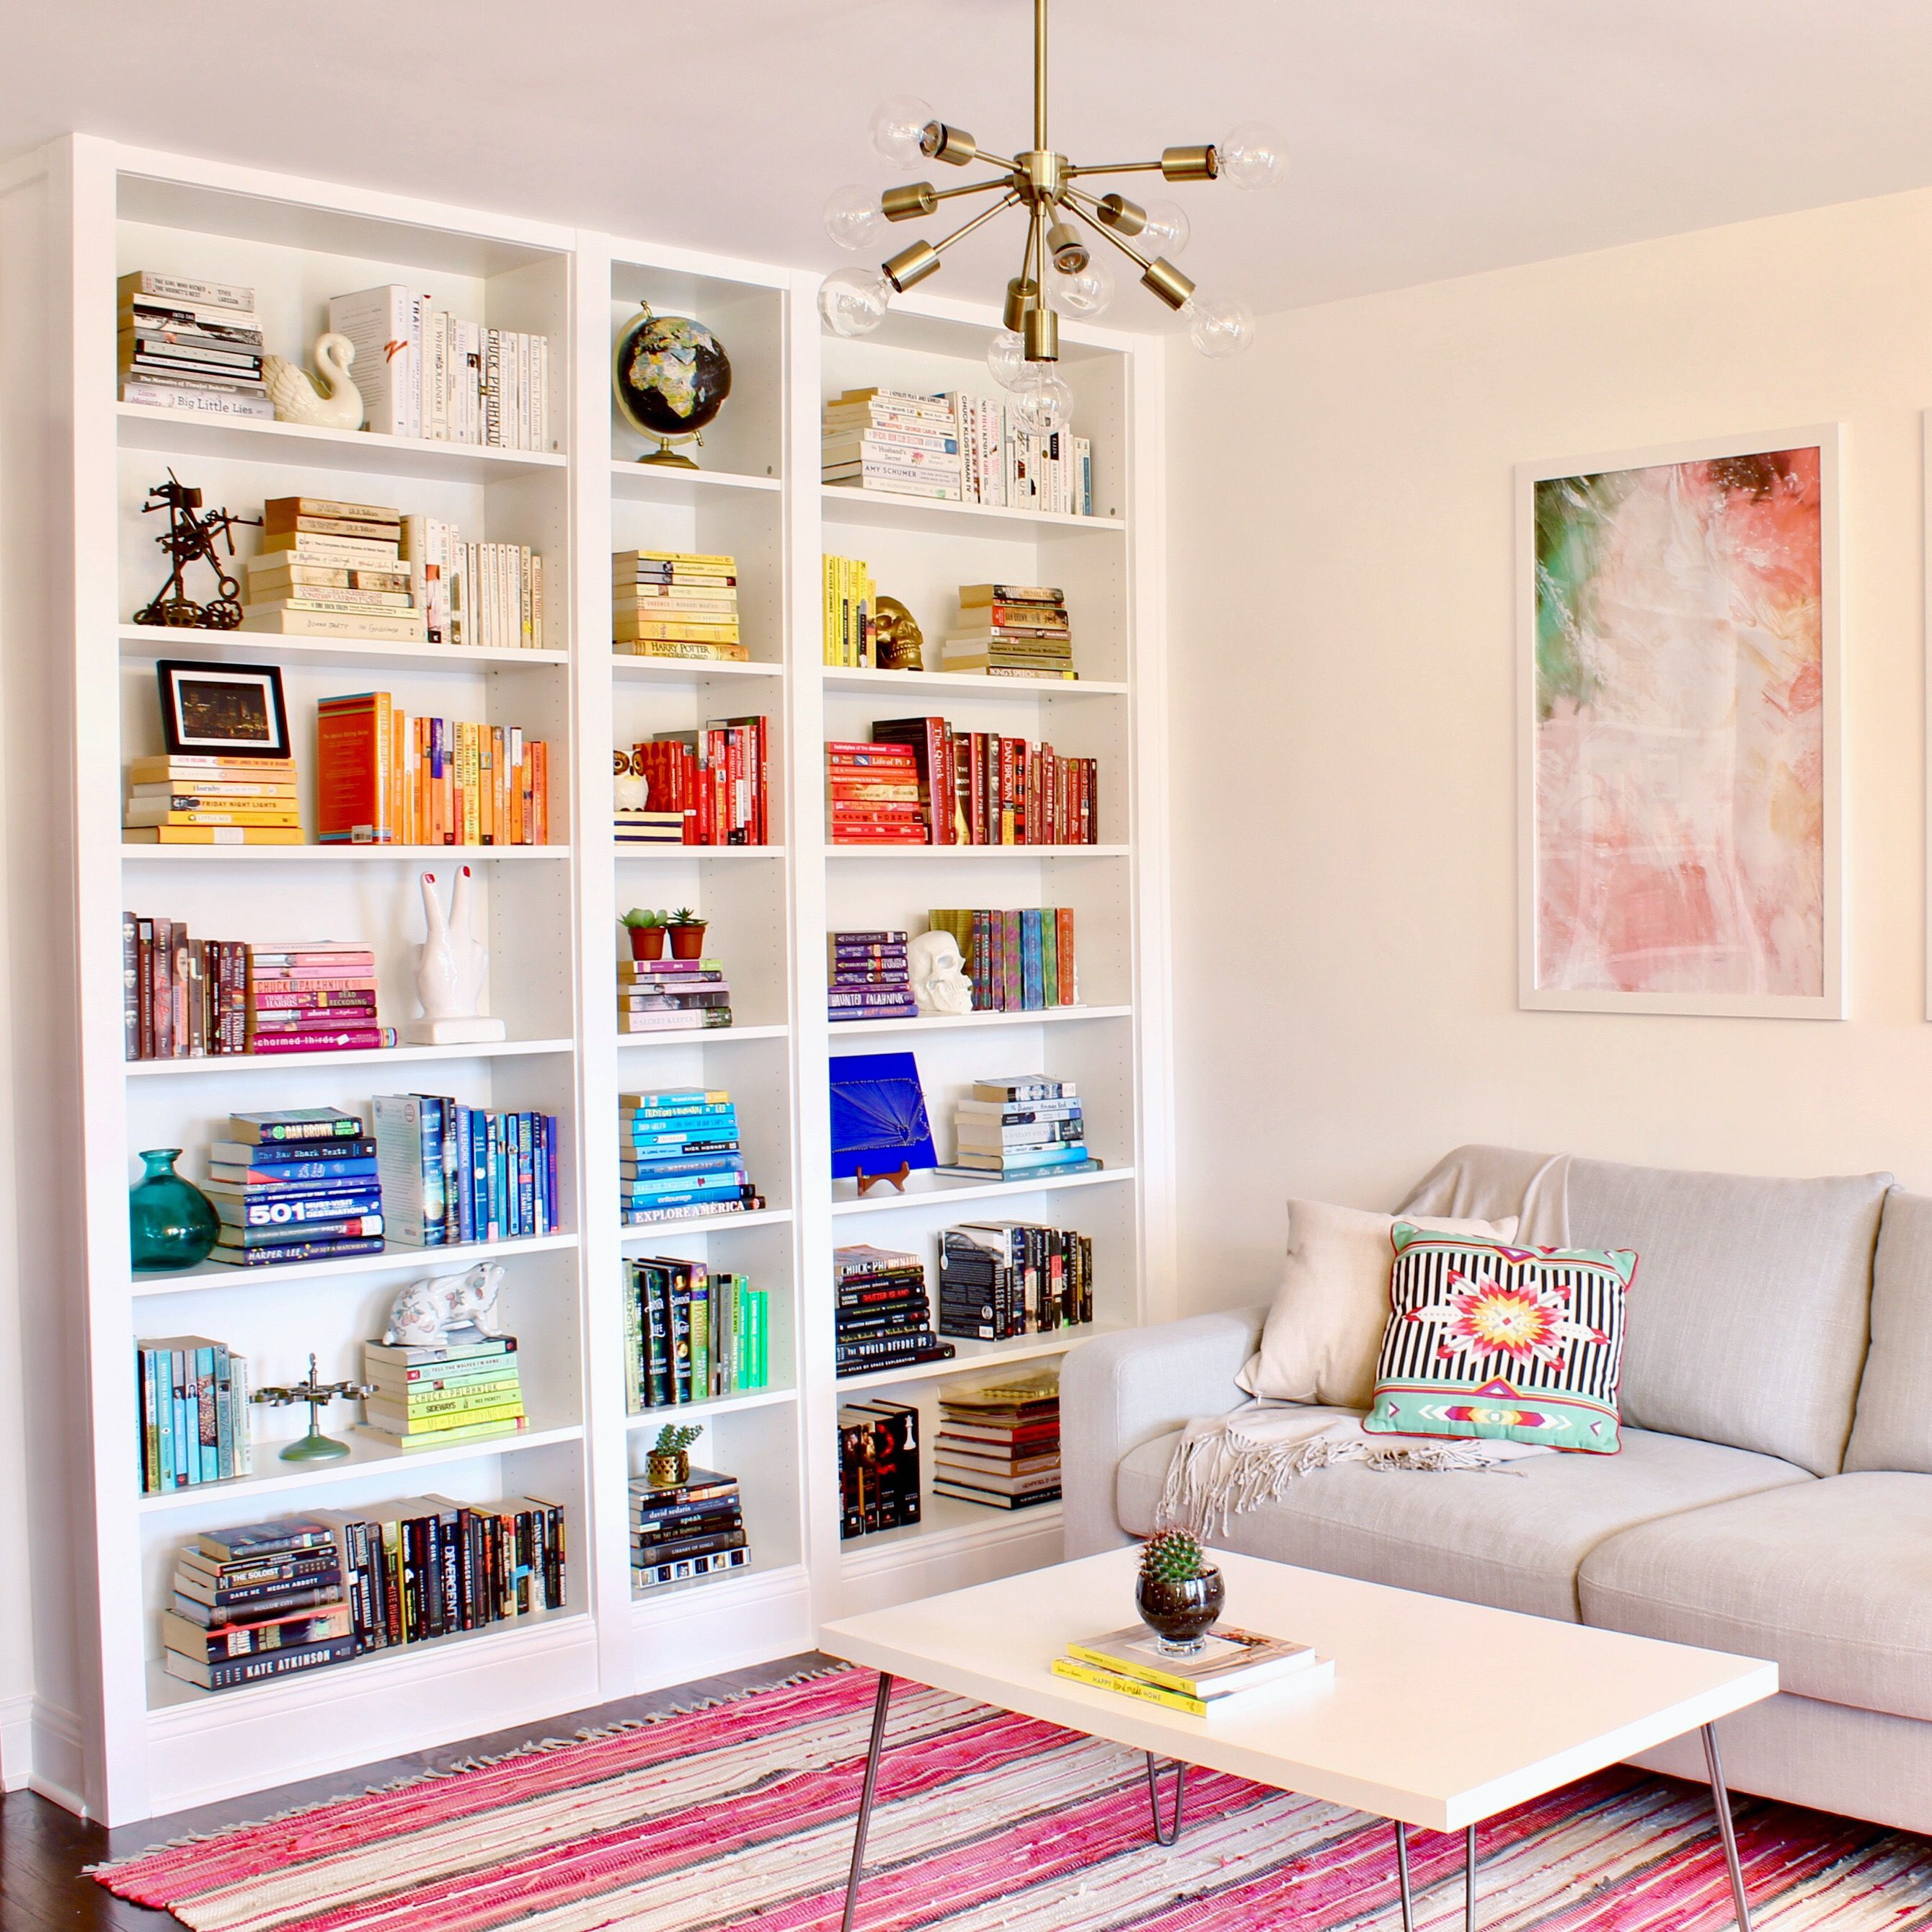 IKEA Built-In Billy Bookcases